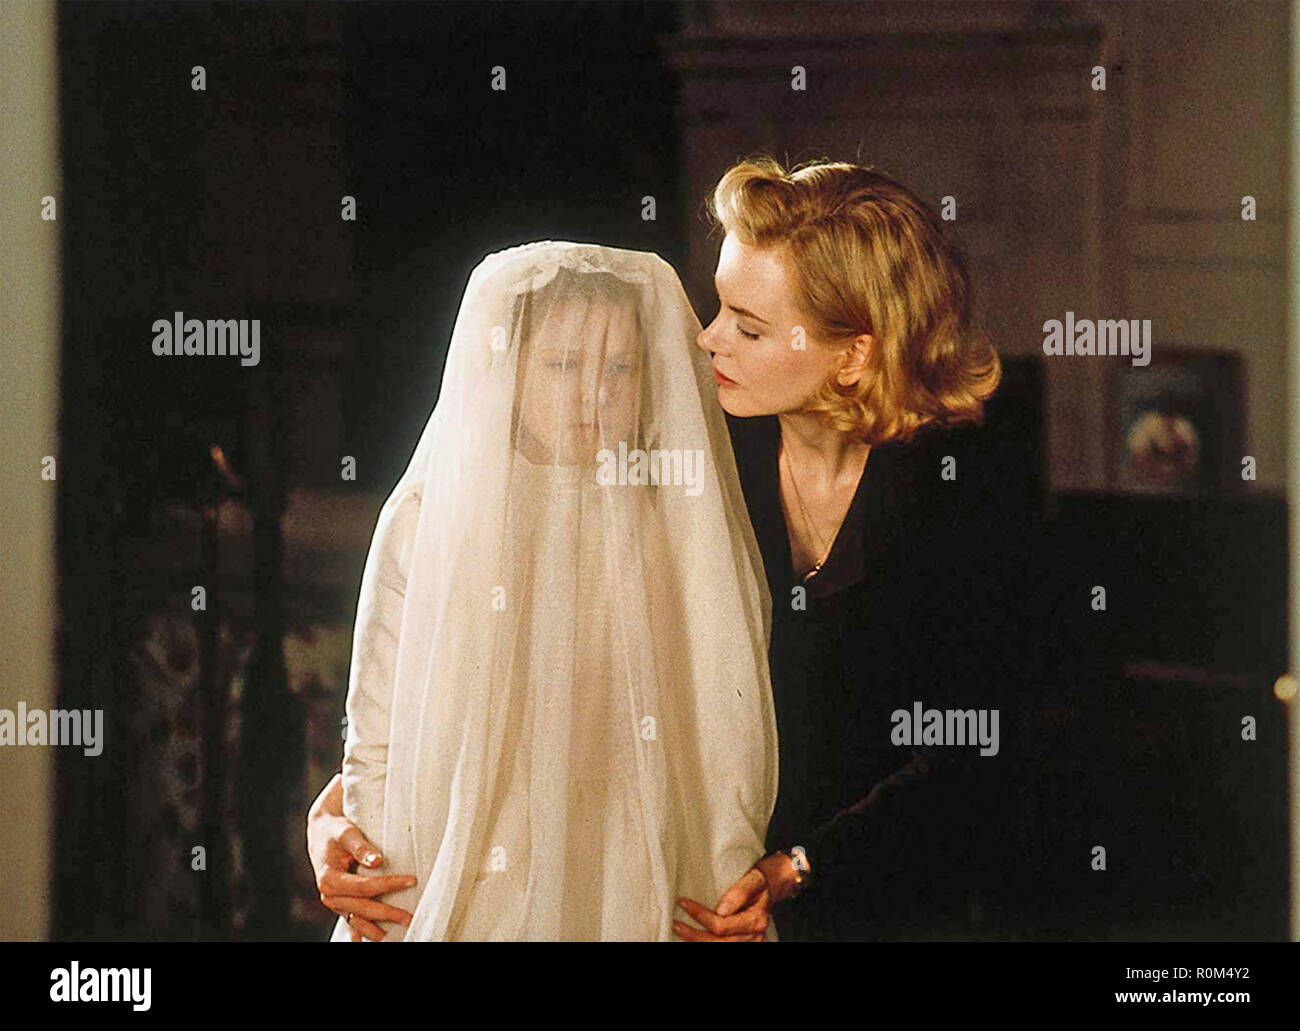 THE OTHERS 2001 Cruise/Warner Productions film with Nicole Kidman - Stock Image